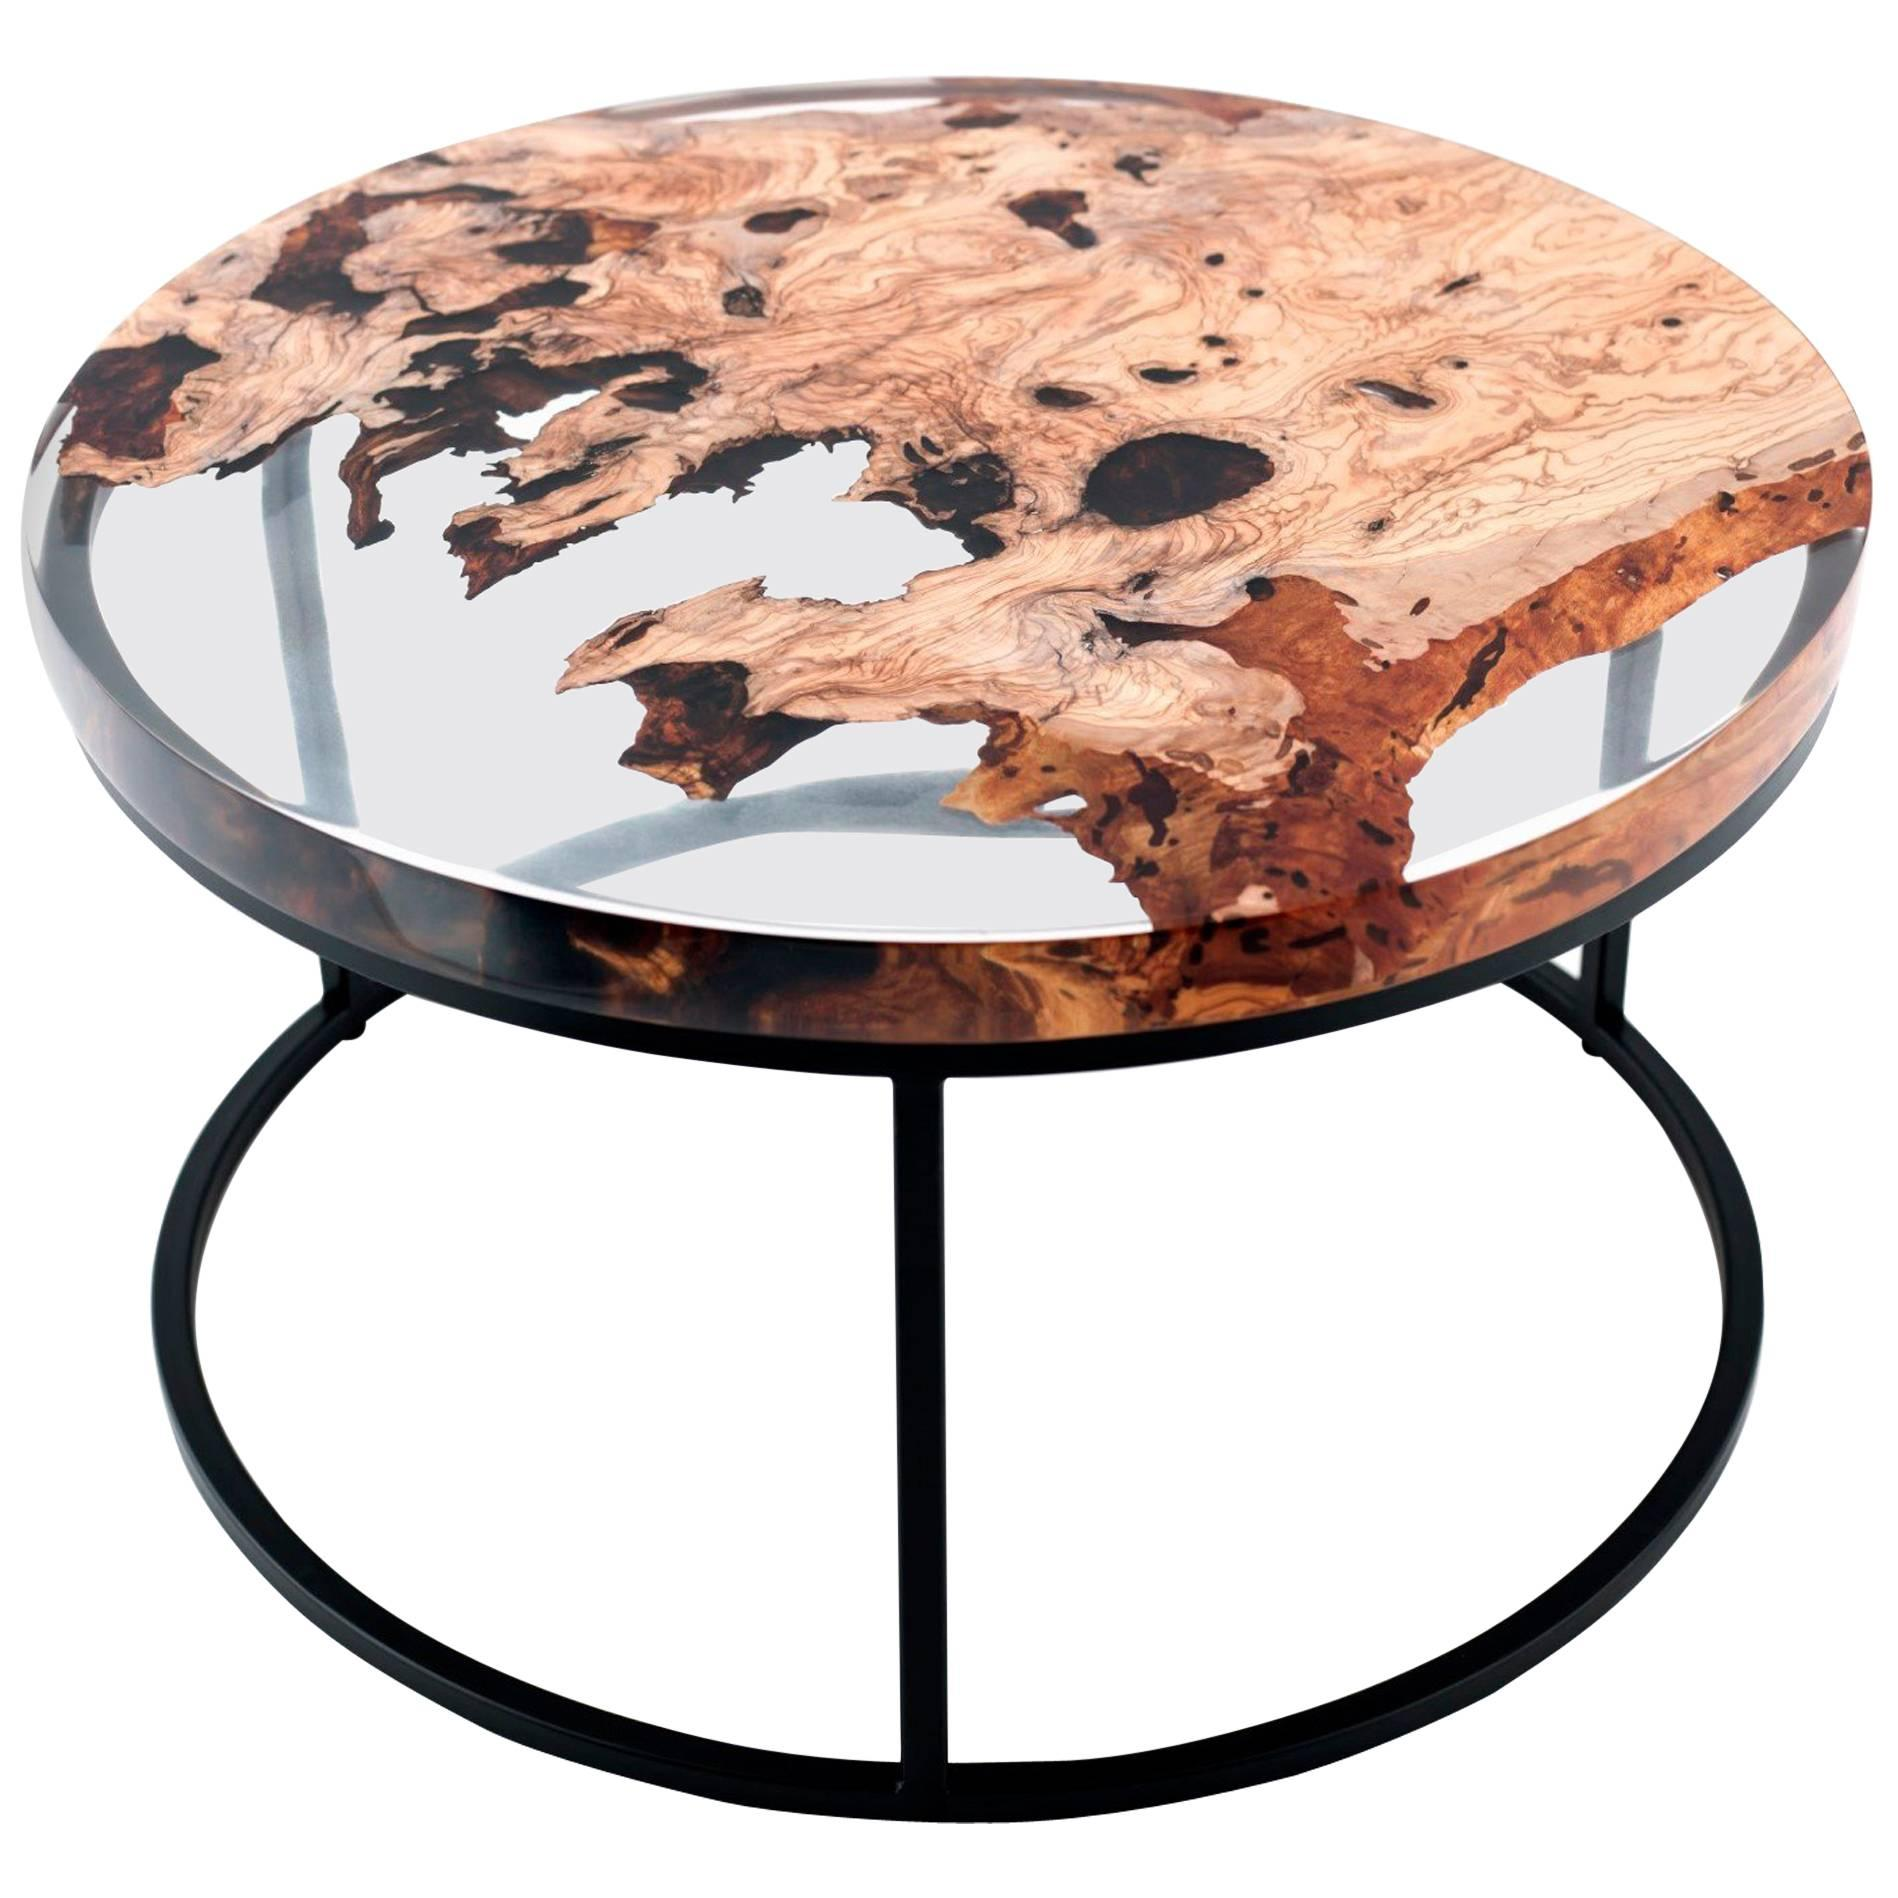 Gold Dust Epoxy Resin Coffee Table For Sale At 1stdibs